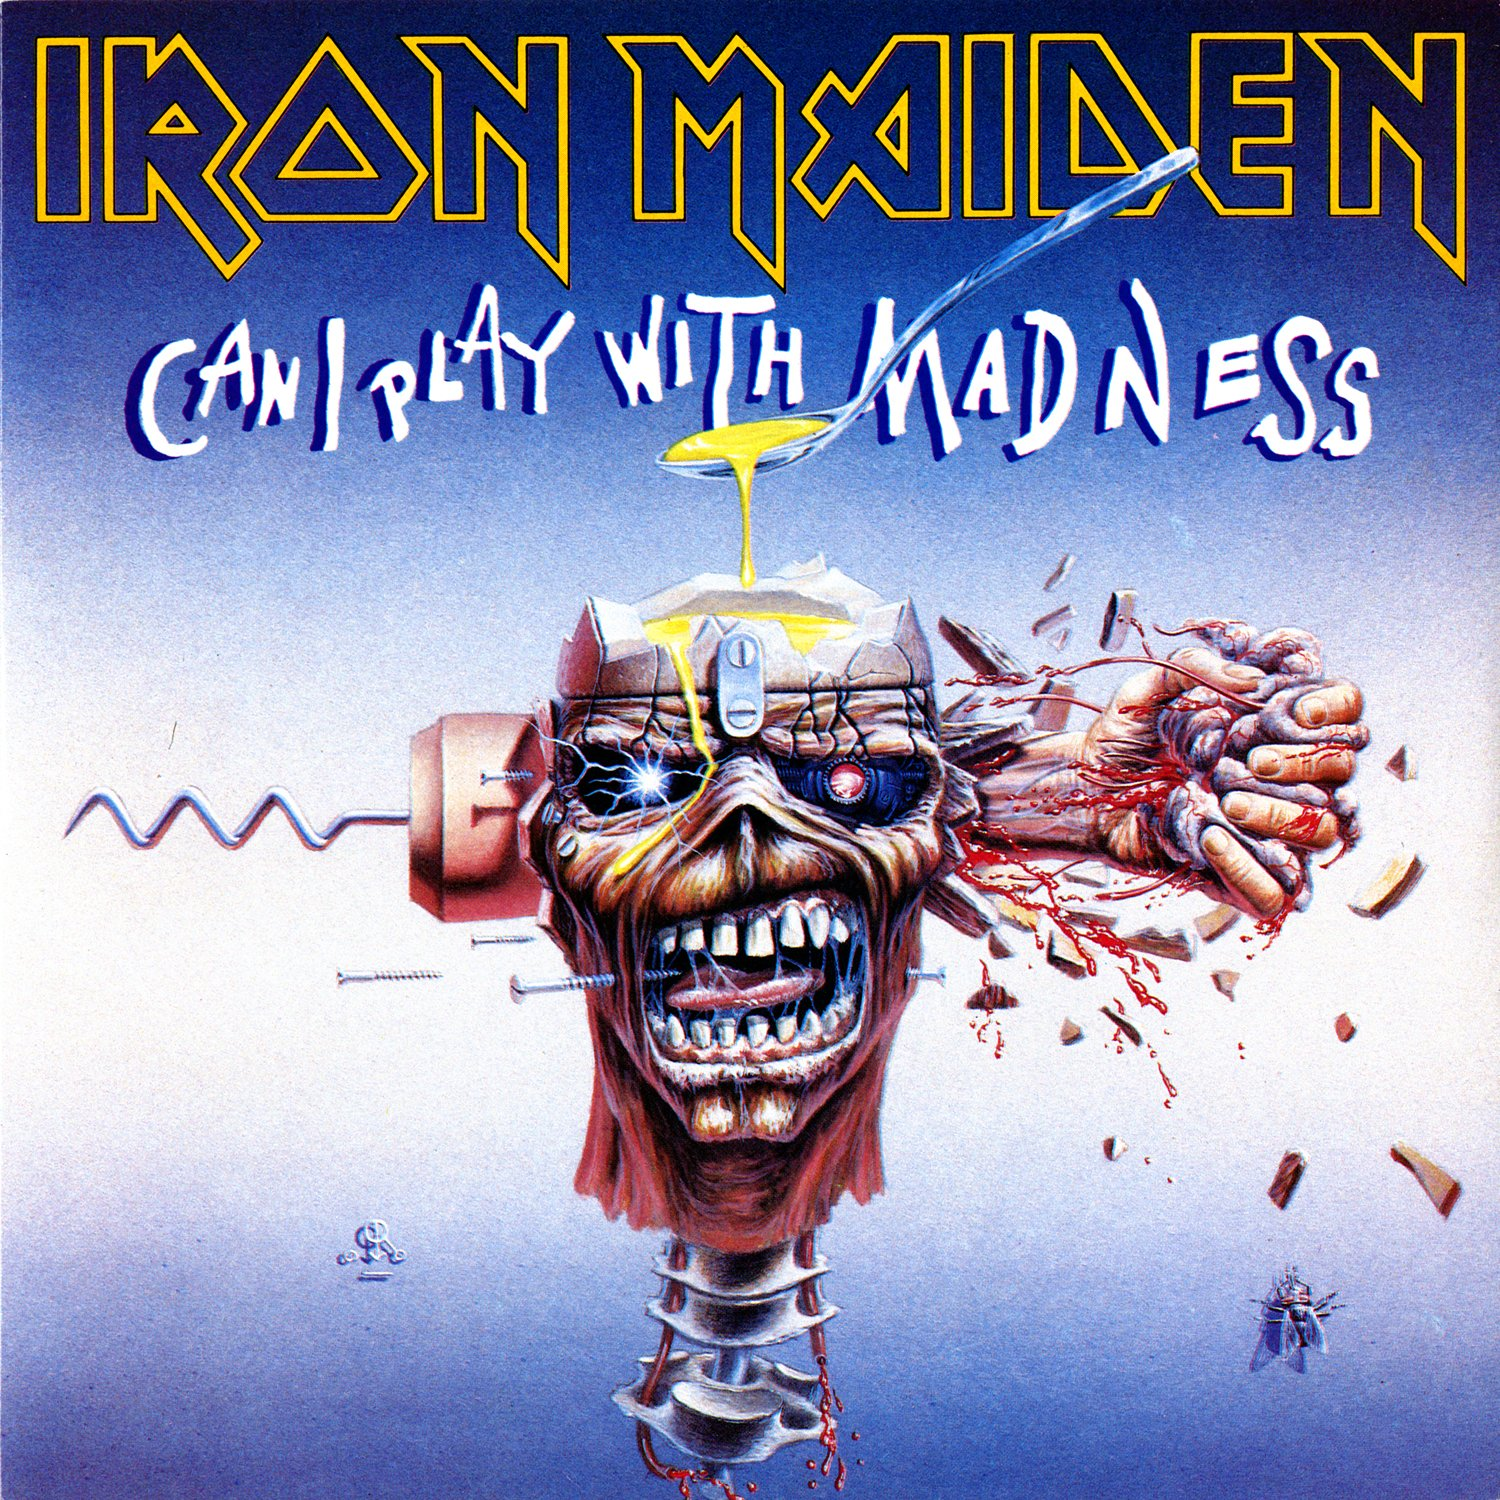 CD : Iron Maiden - Can I Play with Madness (Limited Edition)